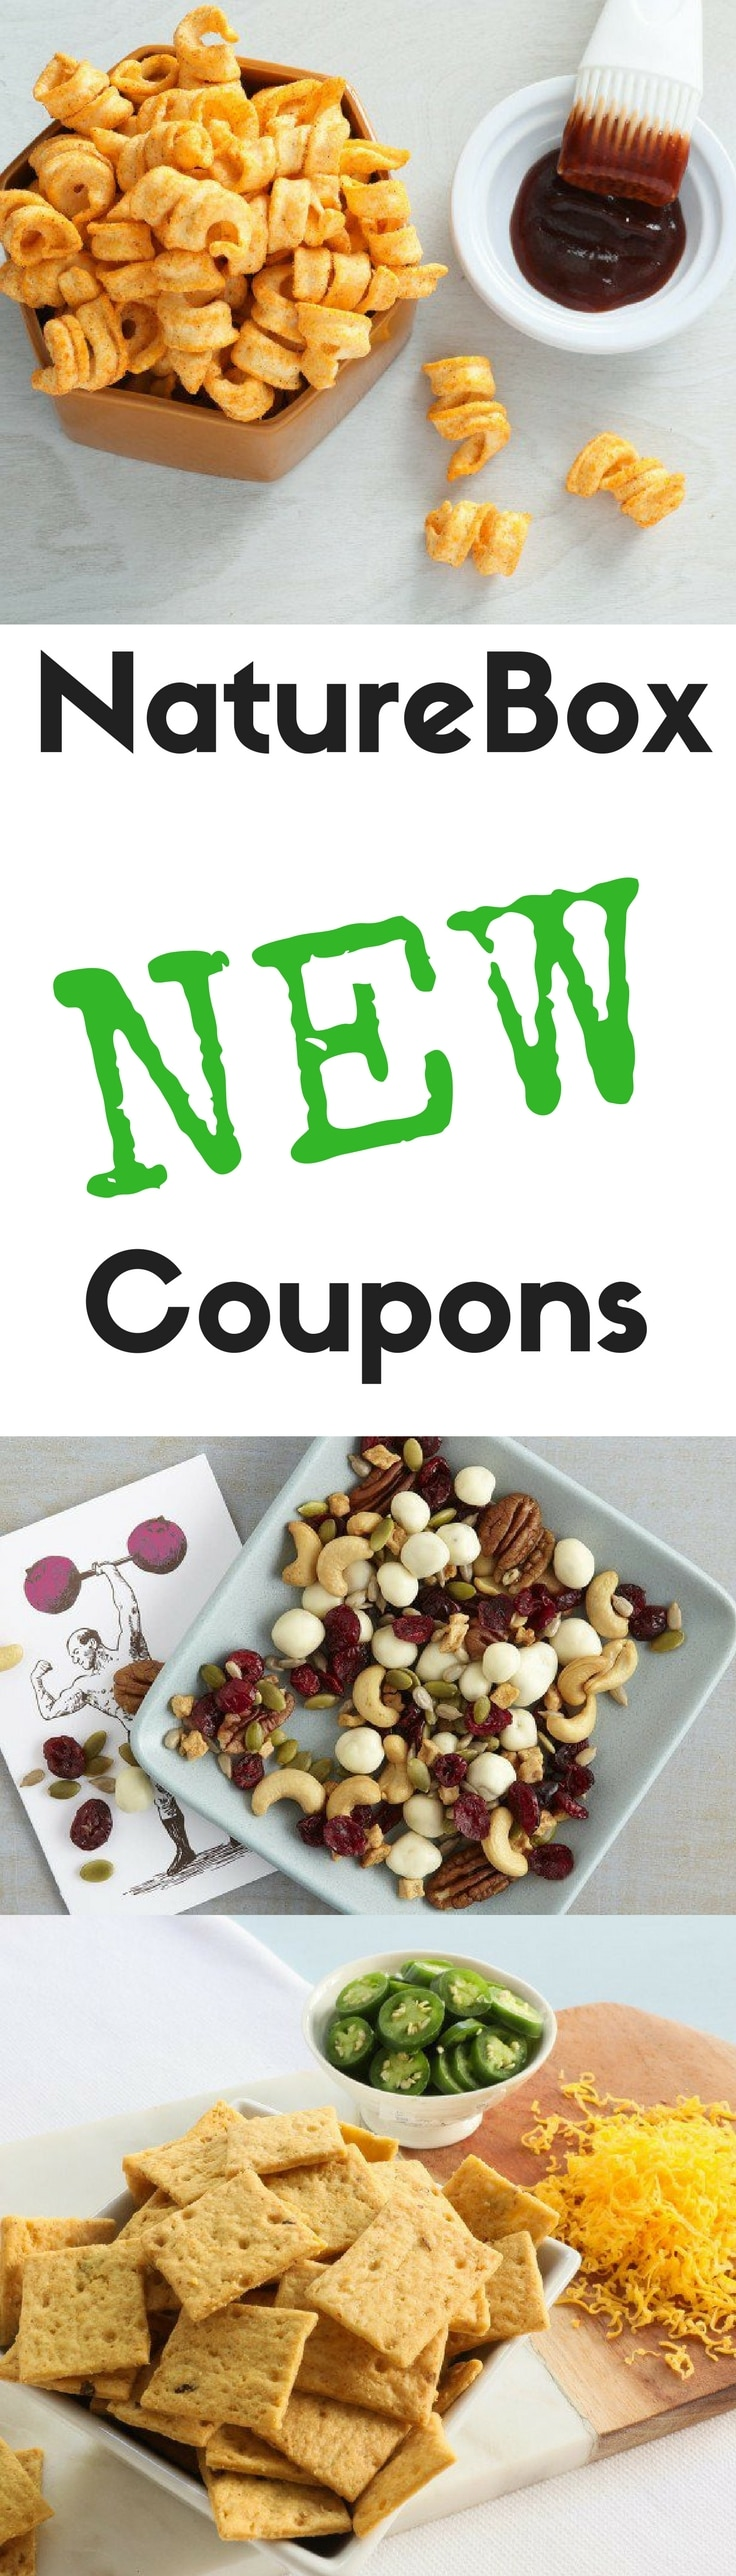 Always updated!  New NatureBox promo codes and coupons, plus the complete guide to getting the most from your NatureBox subscription.